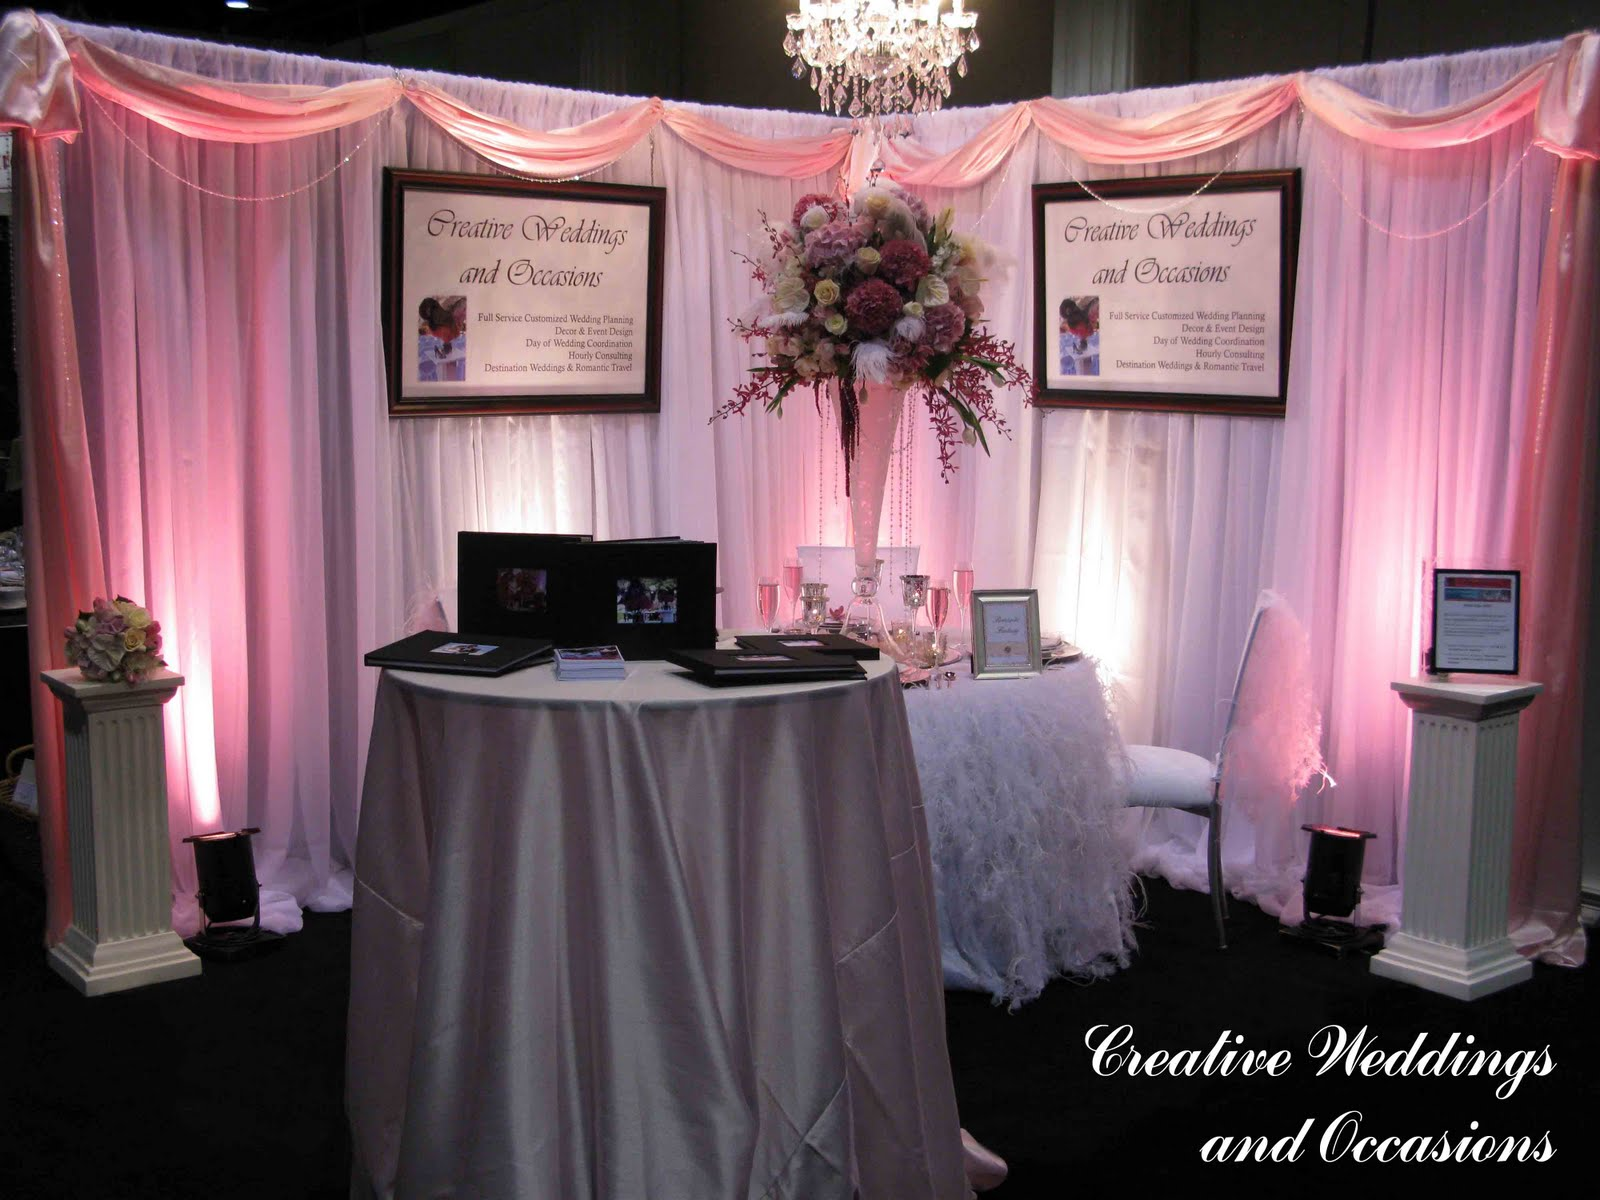 Wedding Planner Bridal Show Booth Ideas : Creative weddings and occasions you went to bridal